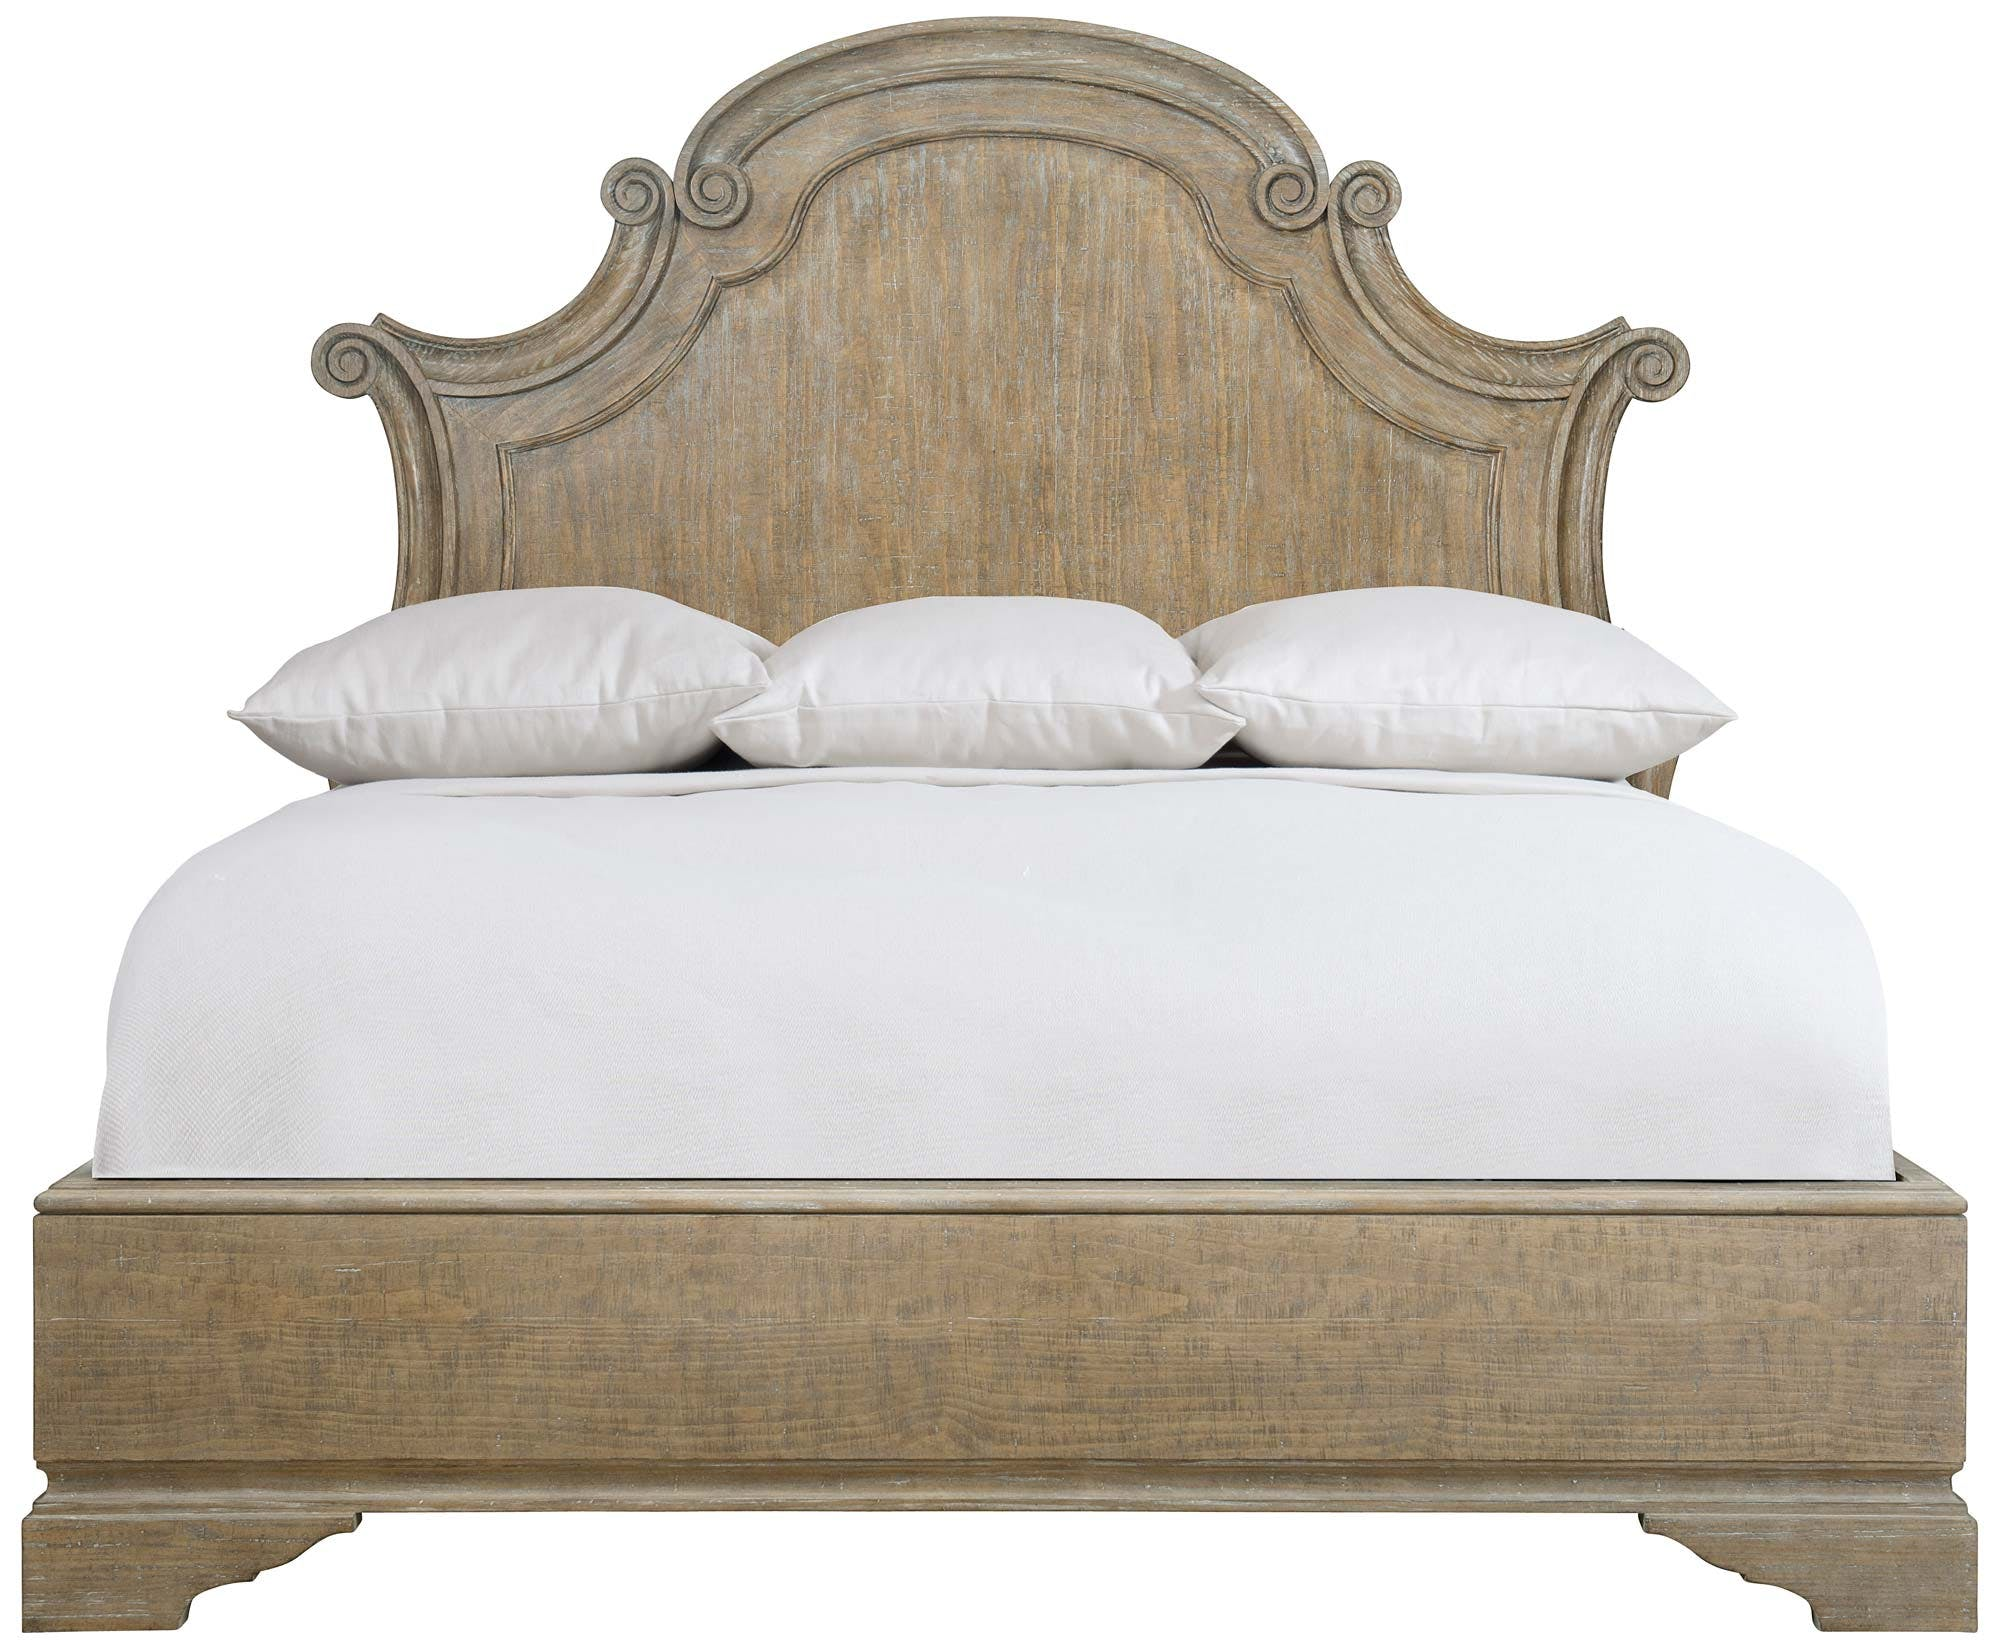 Image of: Villa Toscana Complete King Bed Be302hfr06